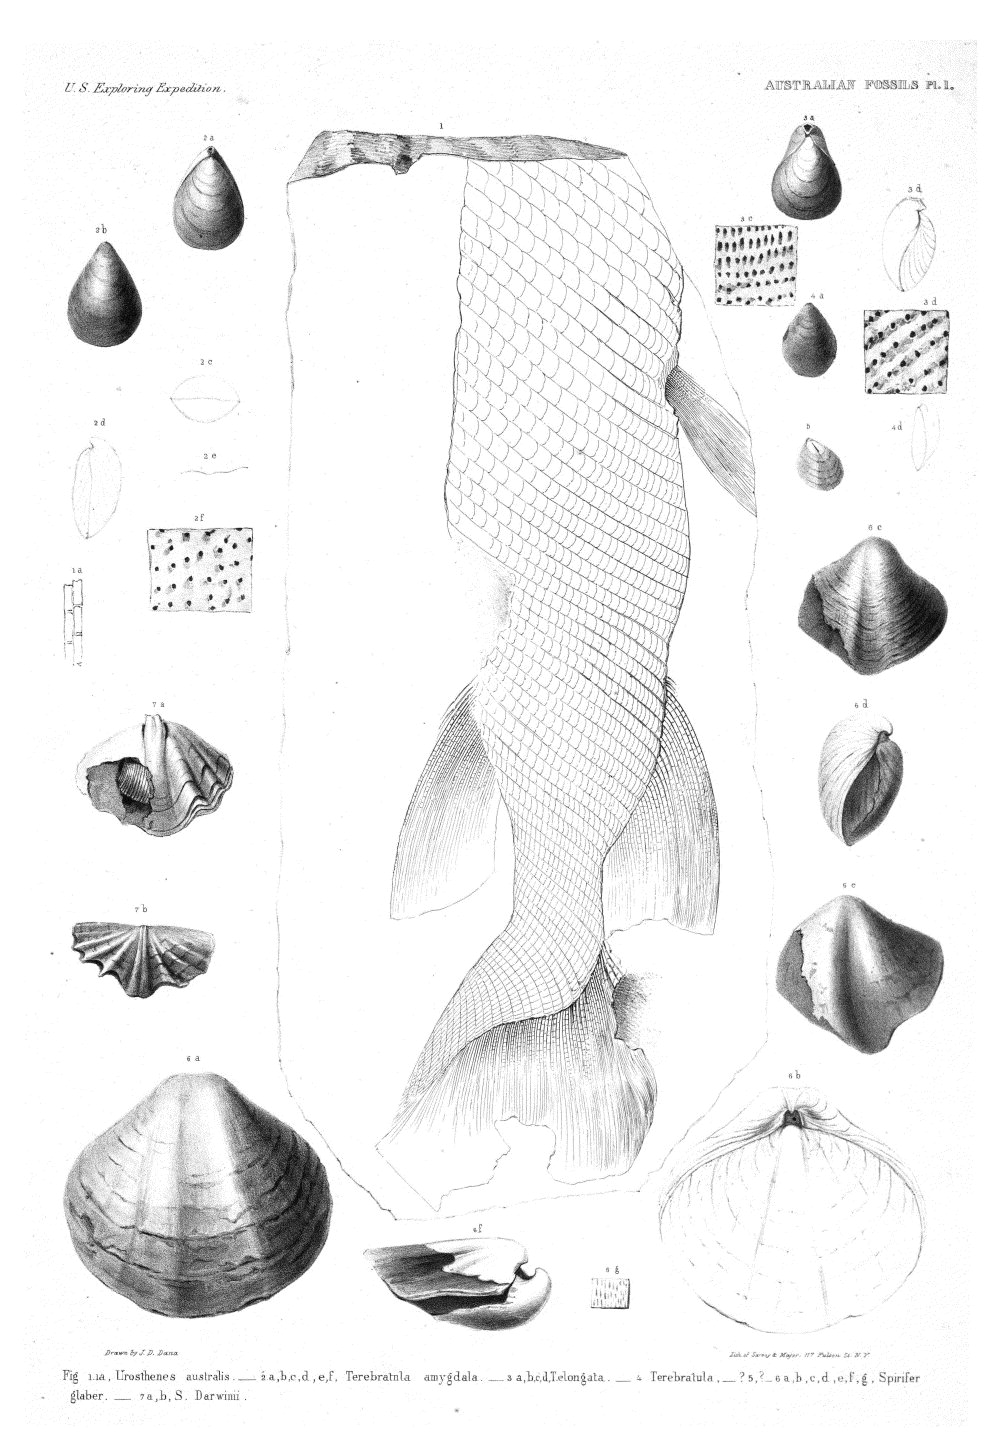 Australian Fossils, Plate 1,  Image number:Sil19-15-007